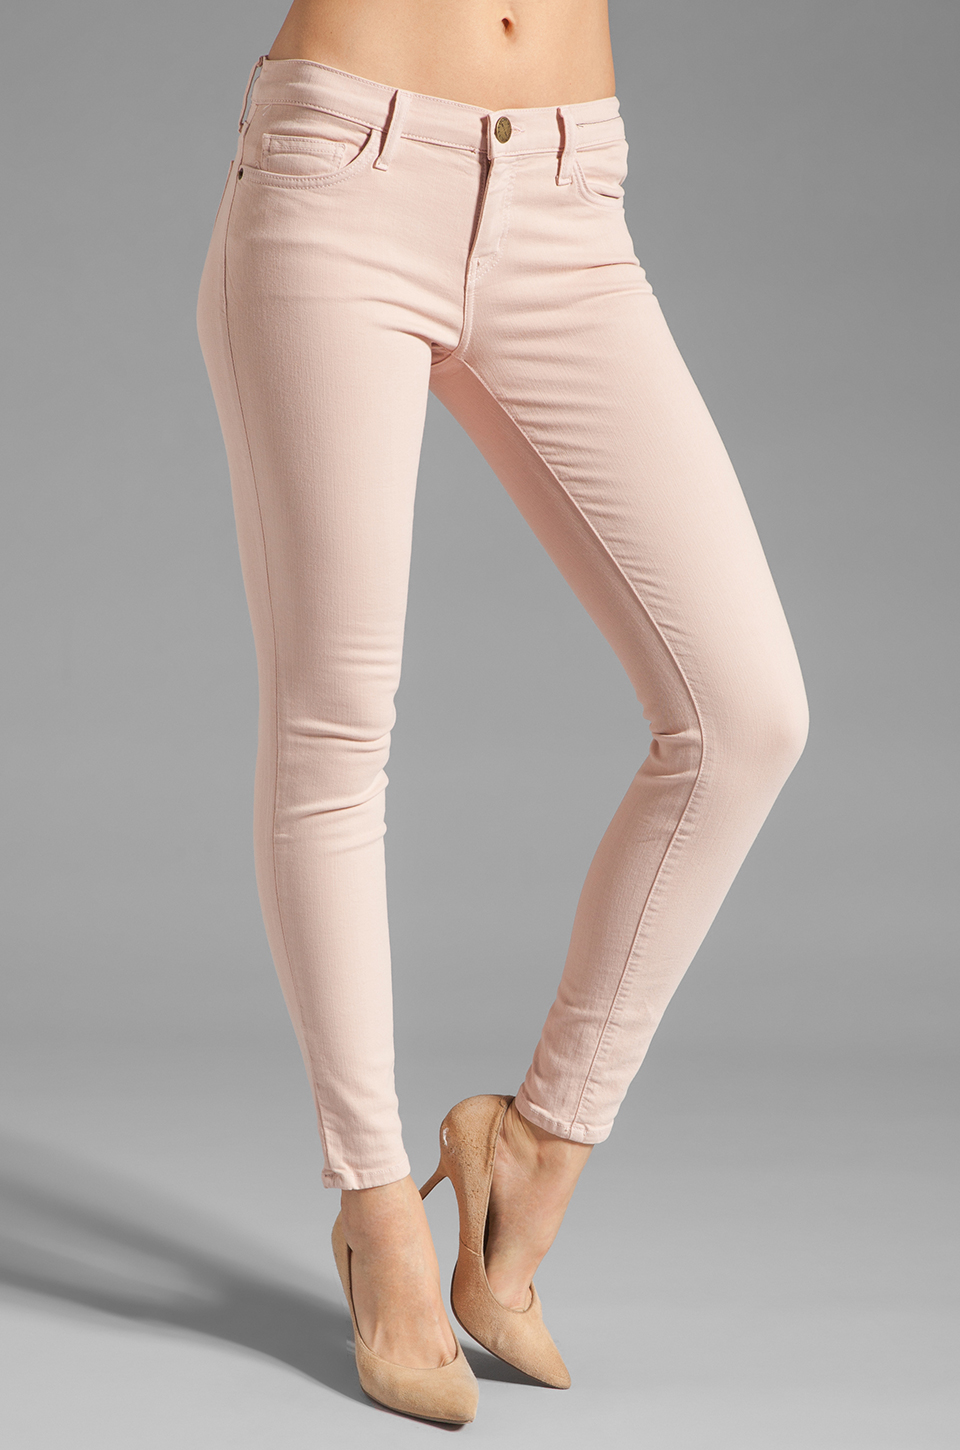 Current/Elliott The Ankle Skinny in Rose Smoke